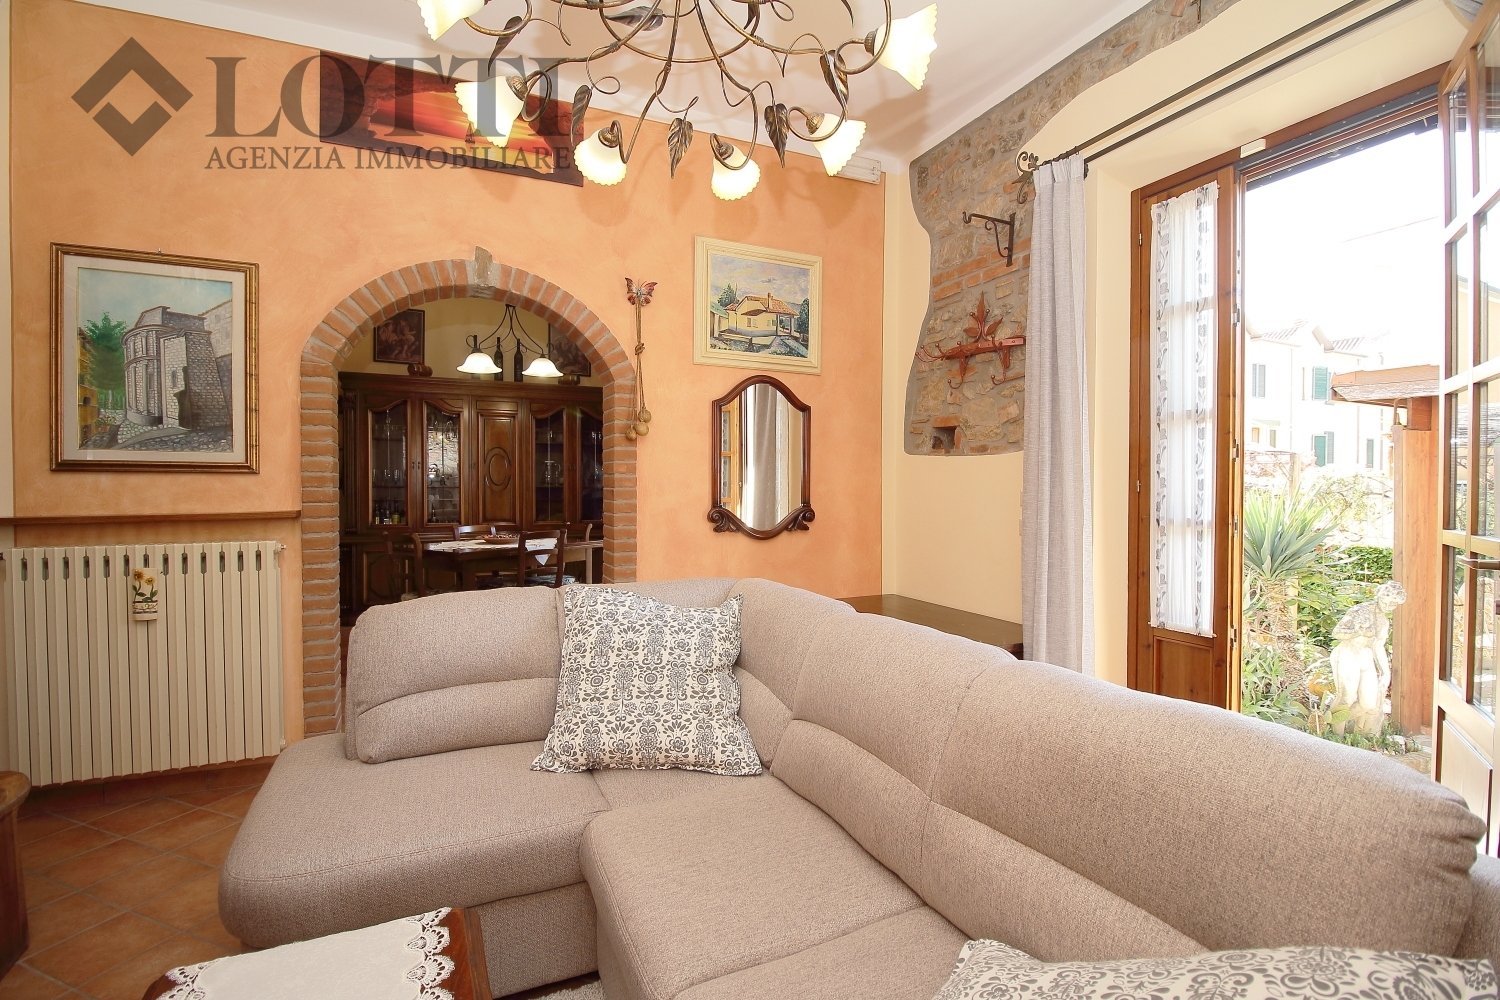 Single-family house for sale, ref. 538